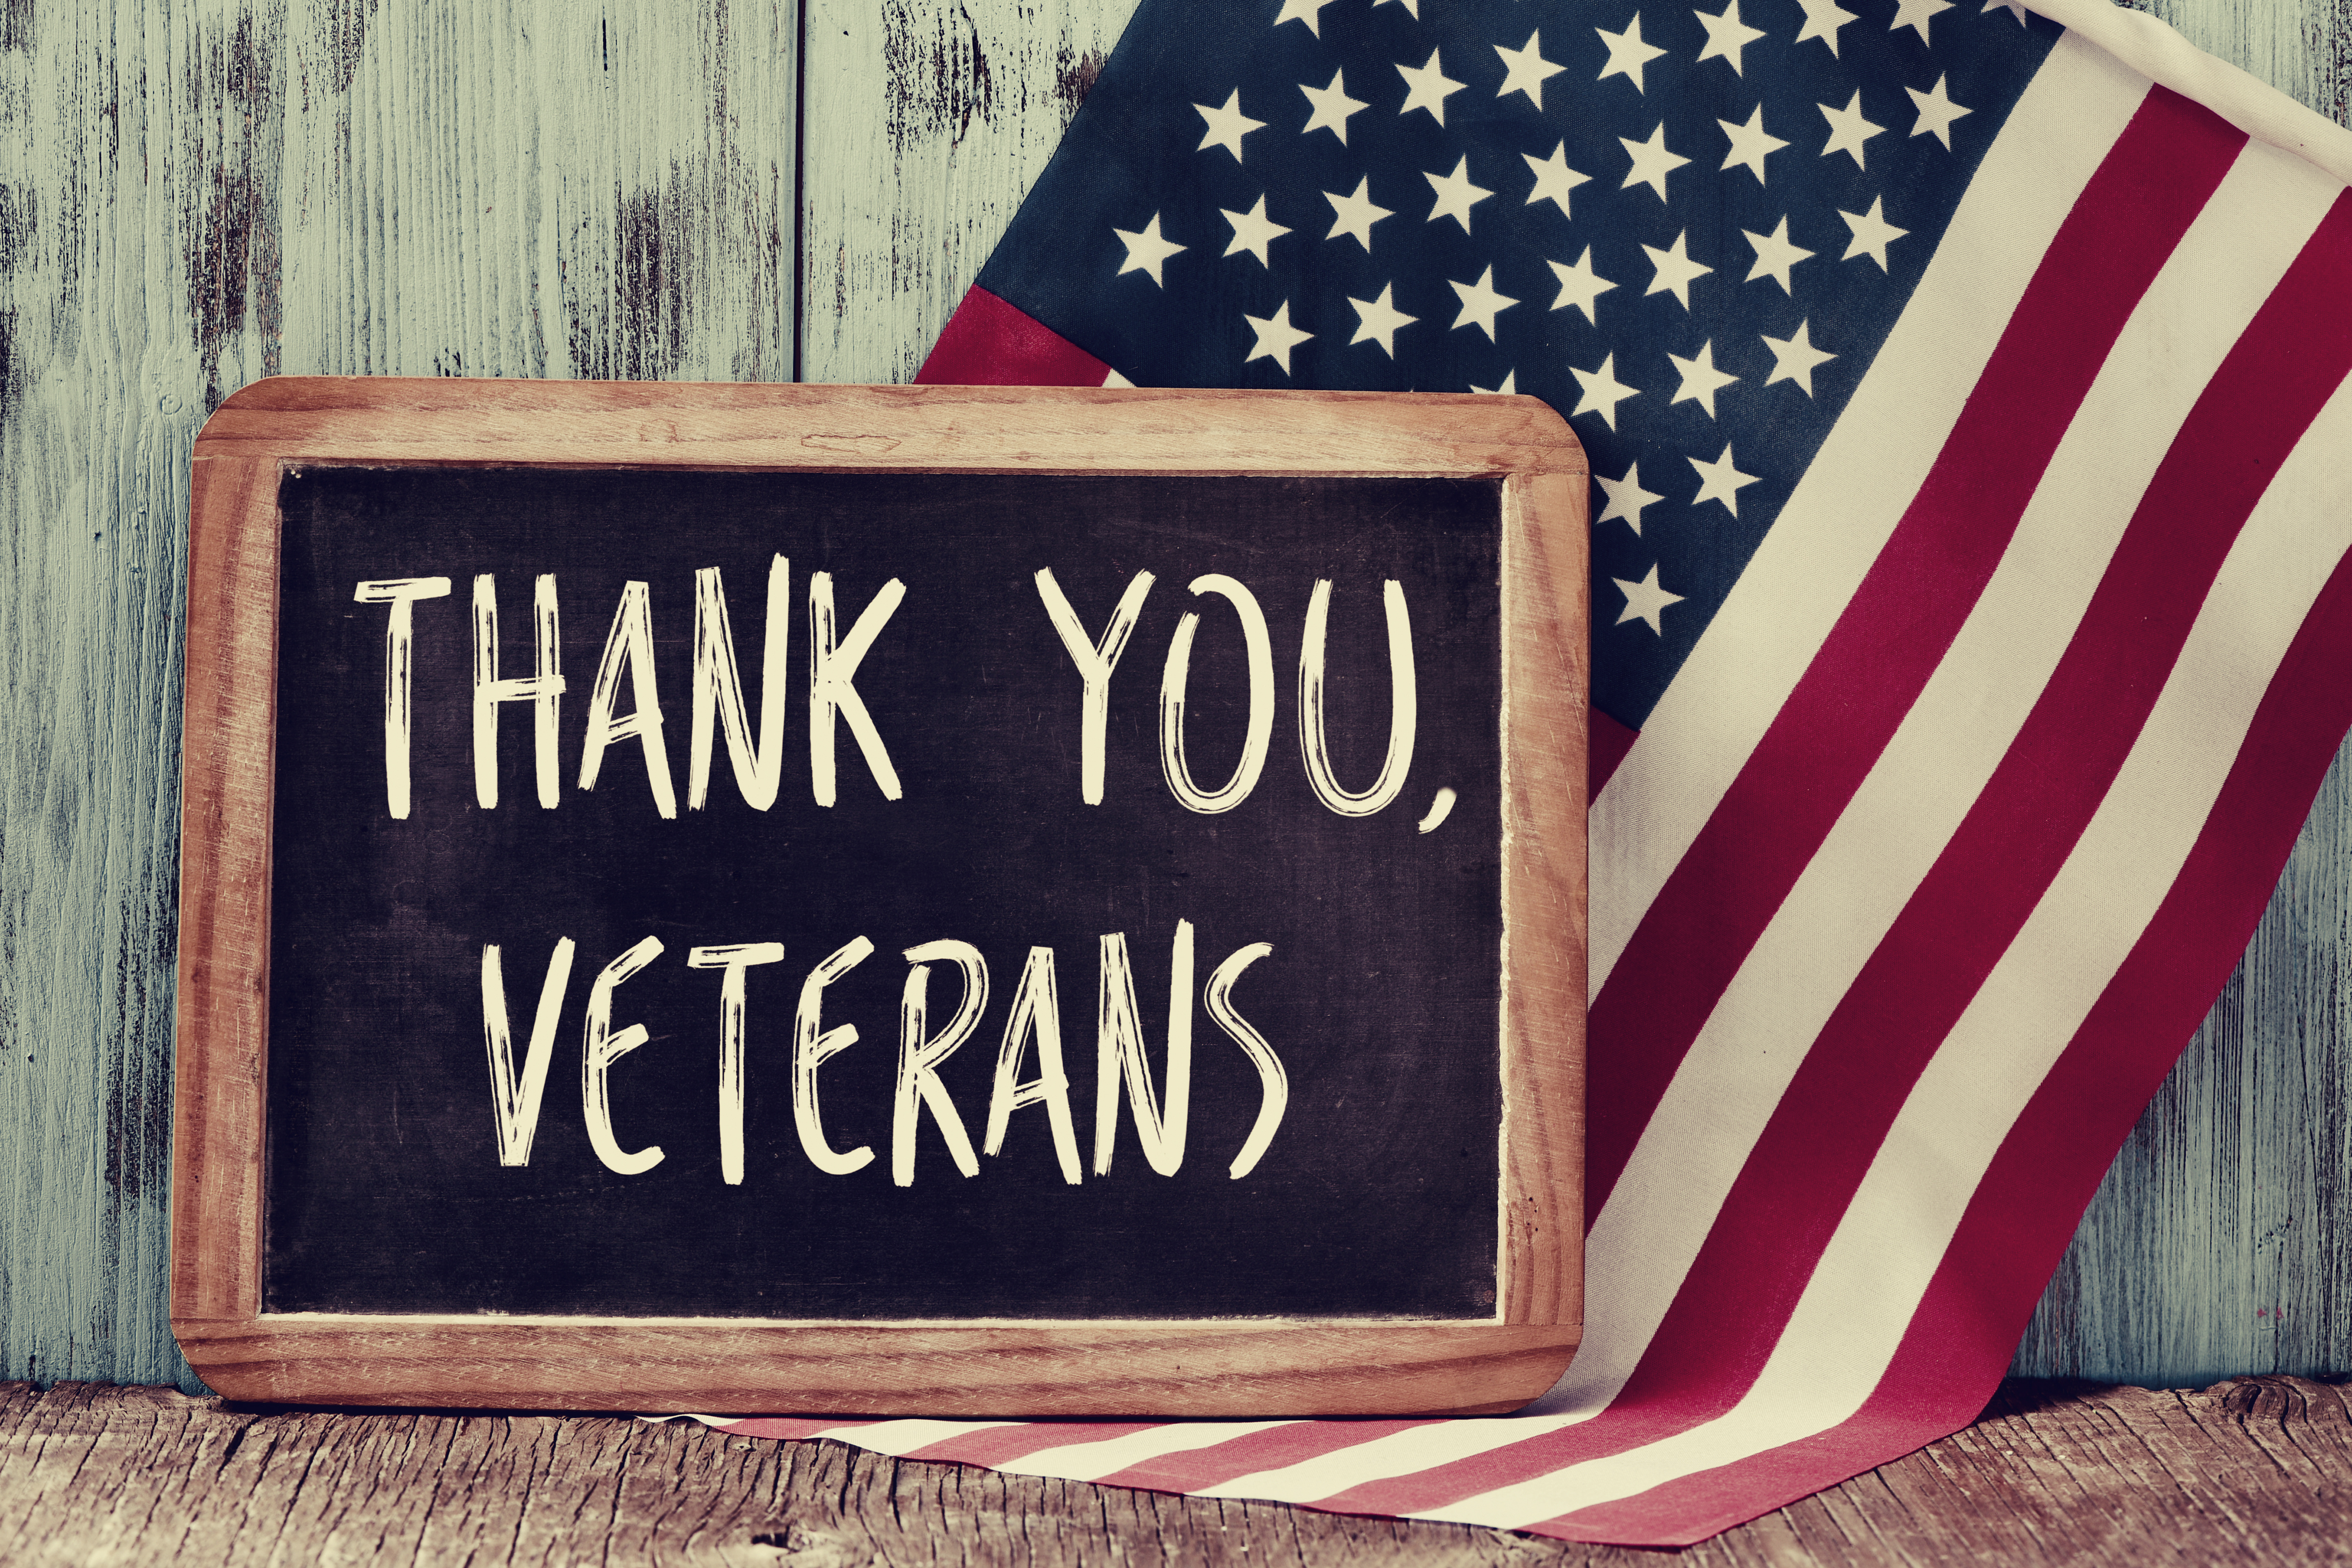 thank-you-veterans-chalkboard-with-american-flag-background